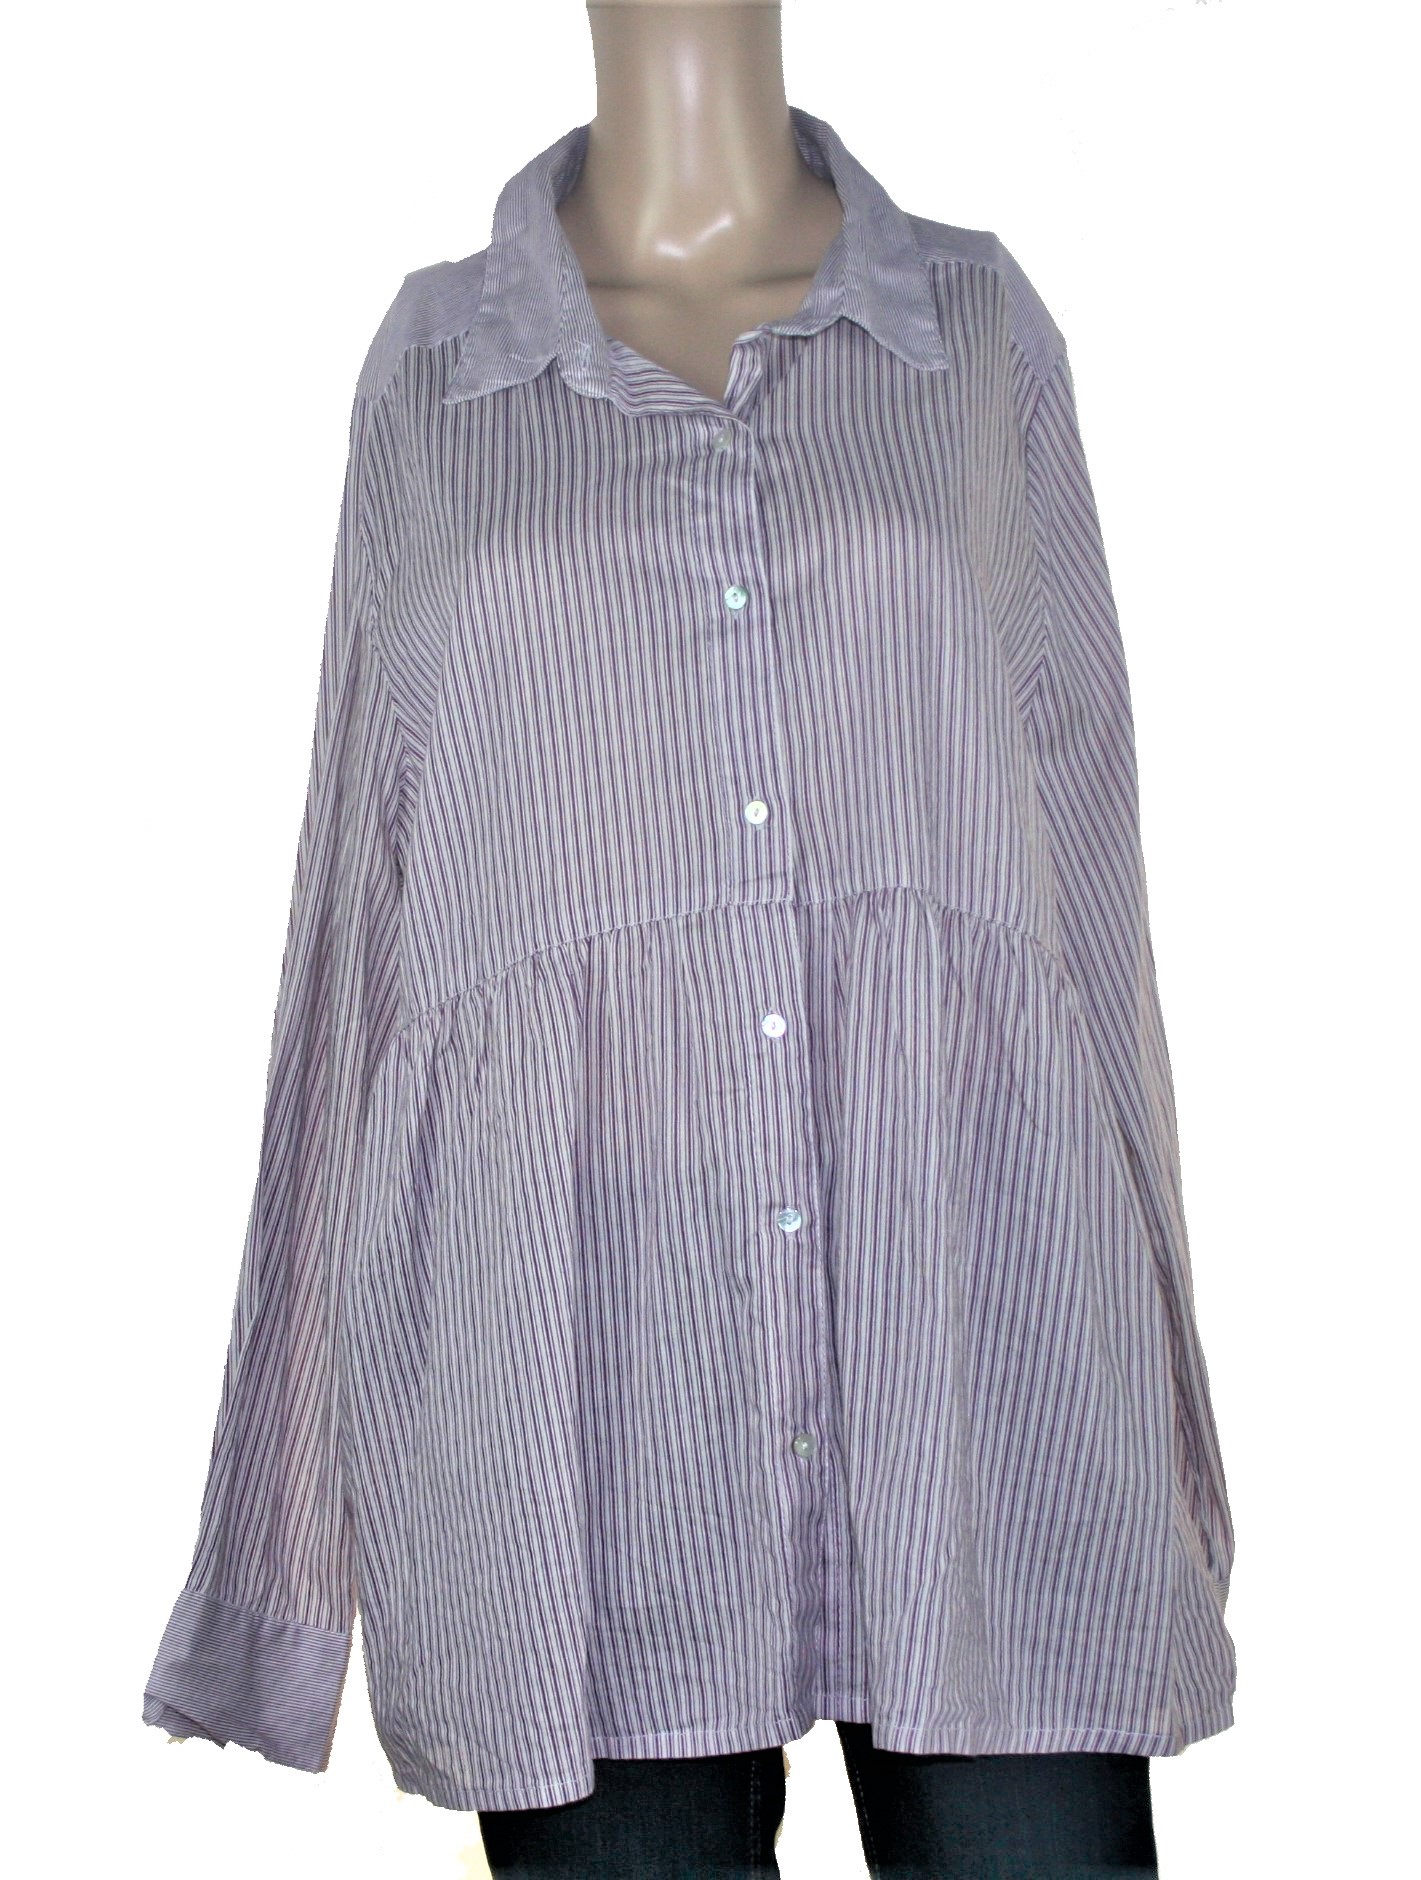 Chemise 3 Suisses - Taille 50